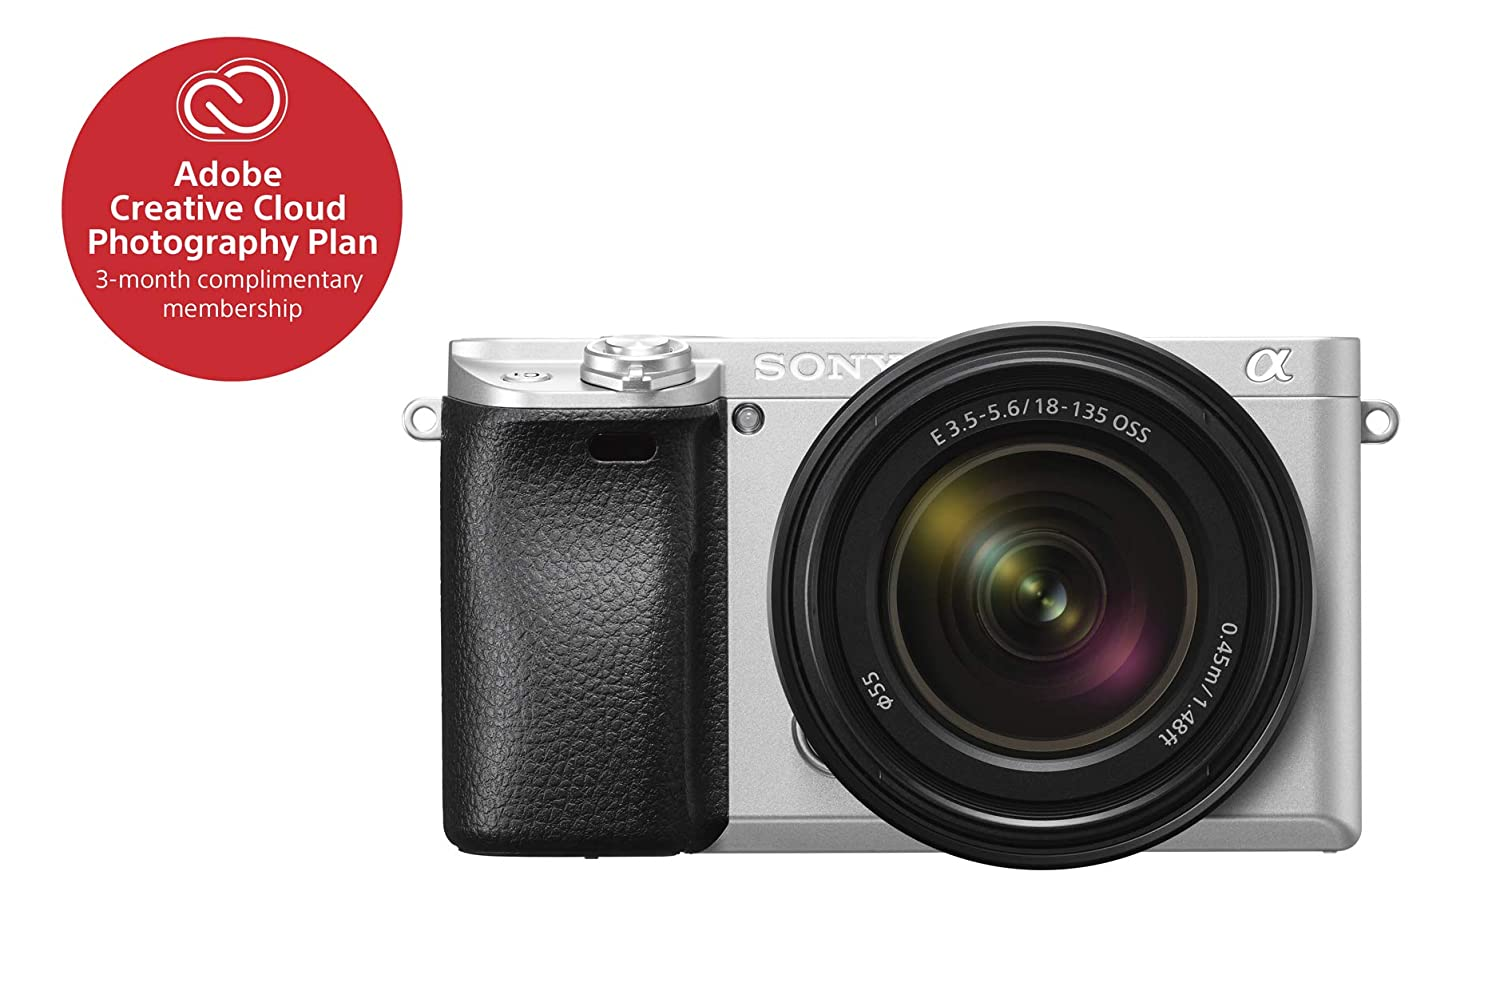 Sony ILCE6300M/B A6300 Mirrorless Camera with 18-135mm Lens SLR, Black Sony Electronics Inc.